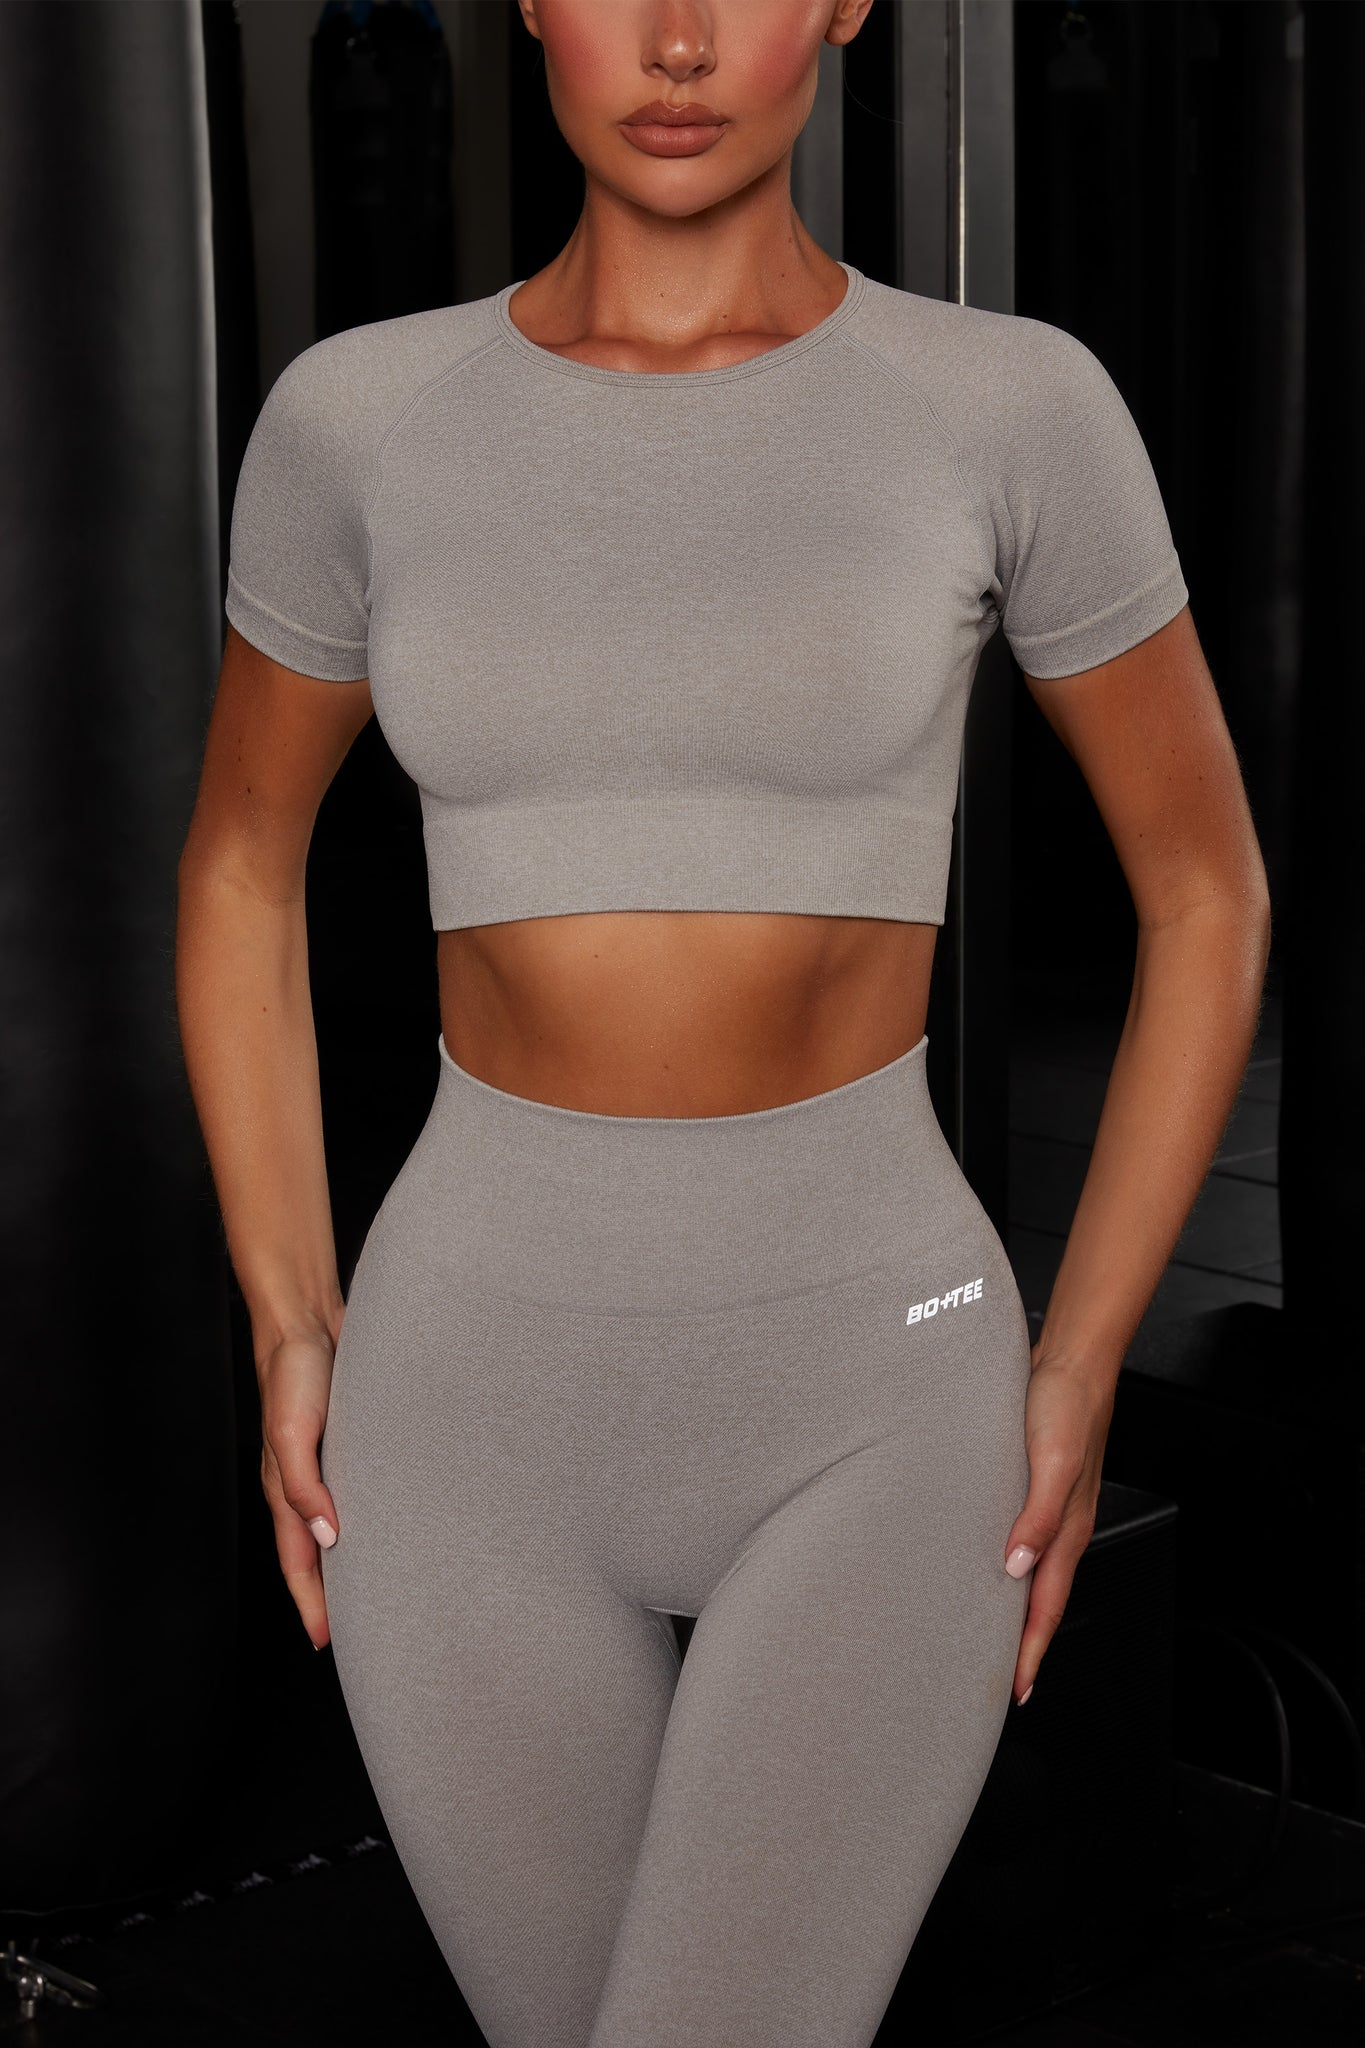 Plain light grey melange round neck crop top with ribbed underband, reflective branding and short sleeves. Image 4 of 6.